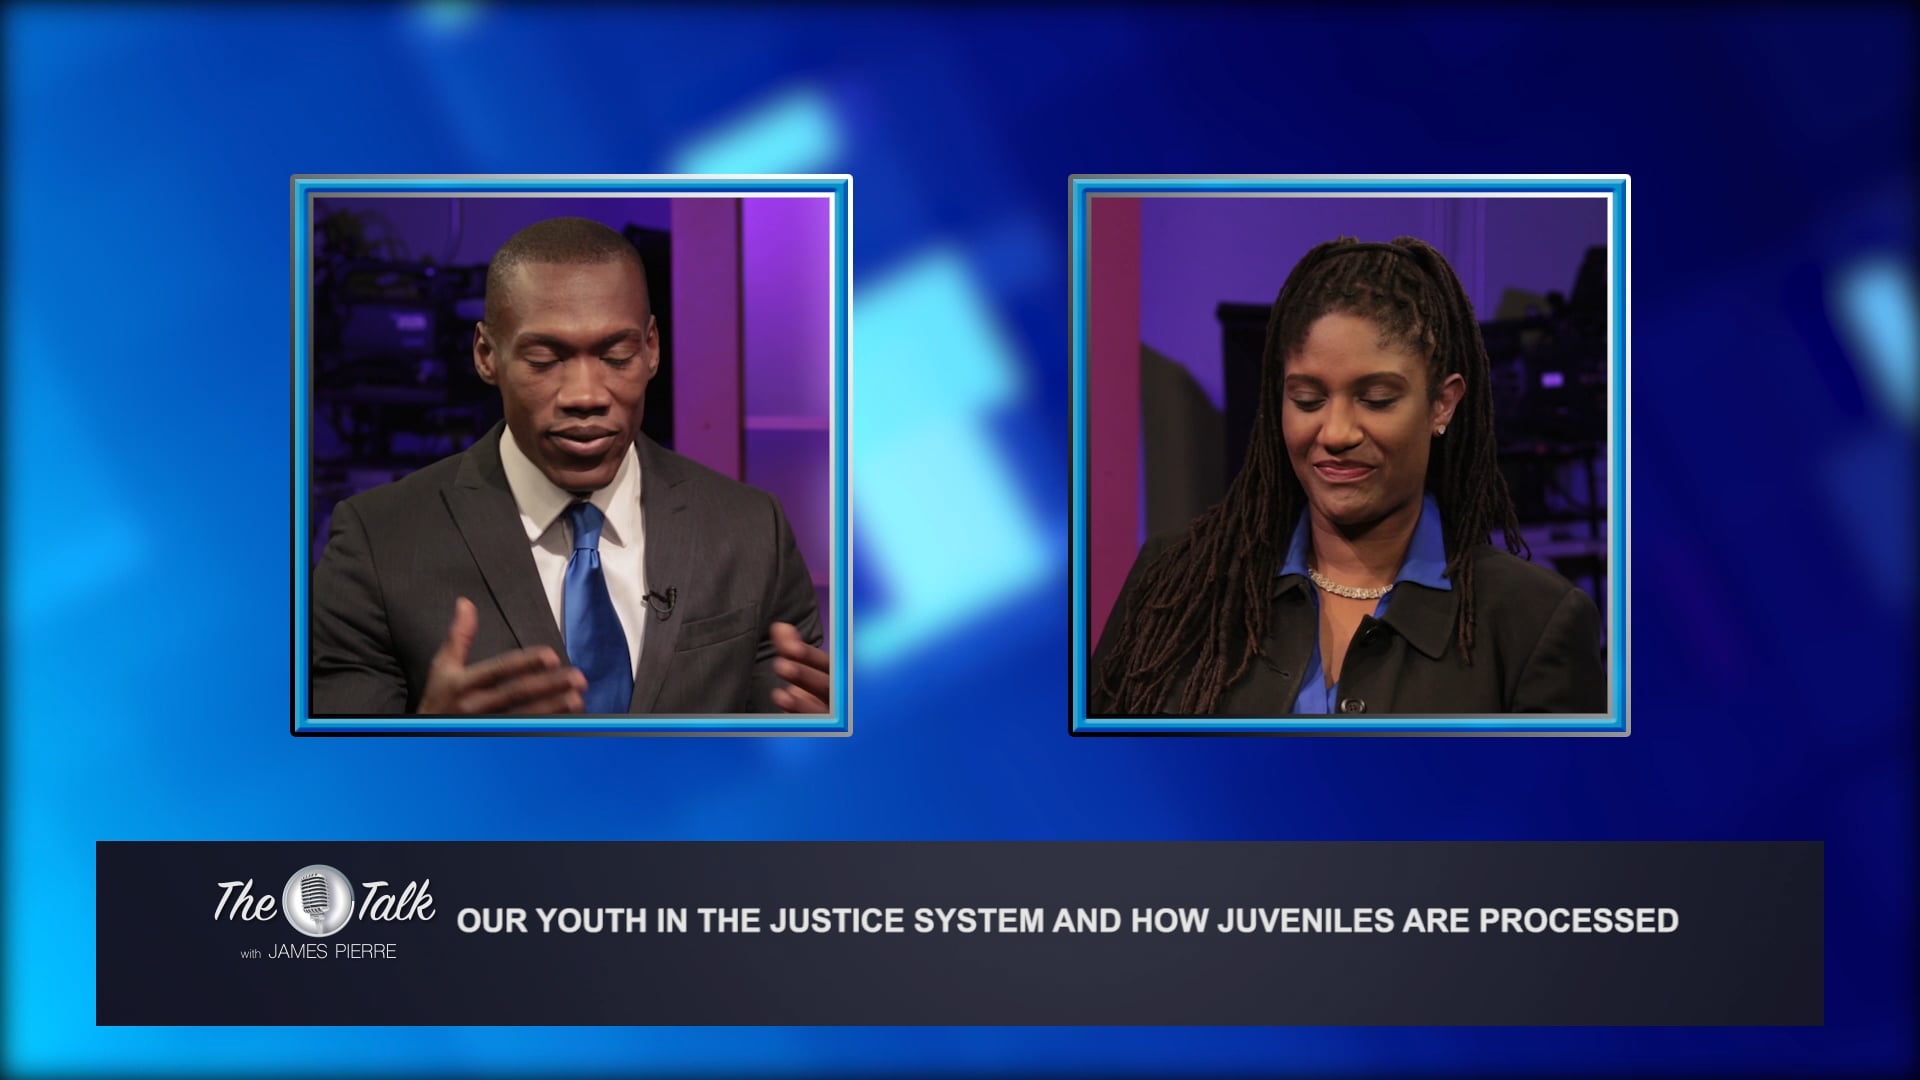 Dr. Shirley Sits Down With James Pierre